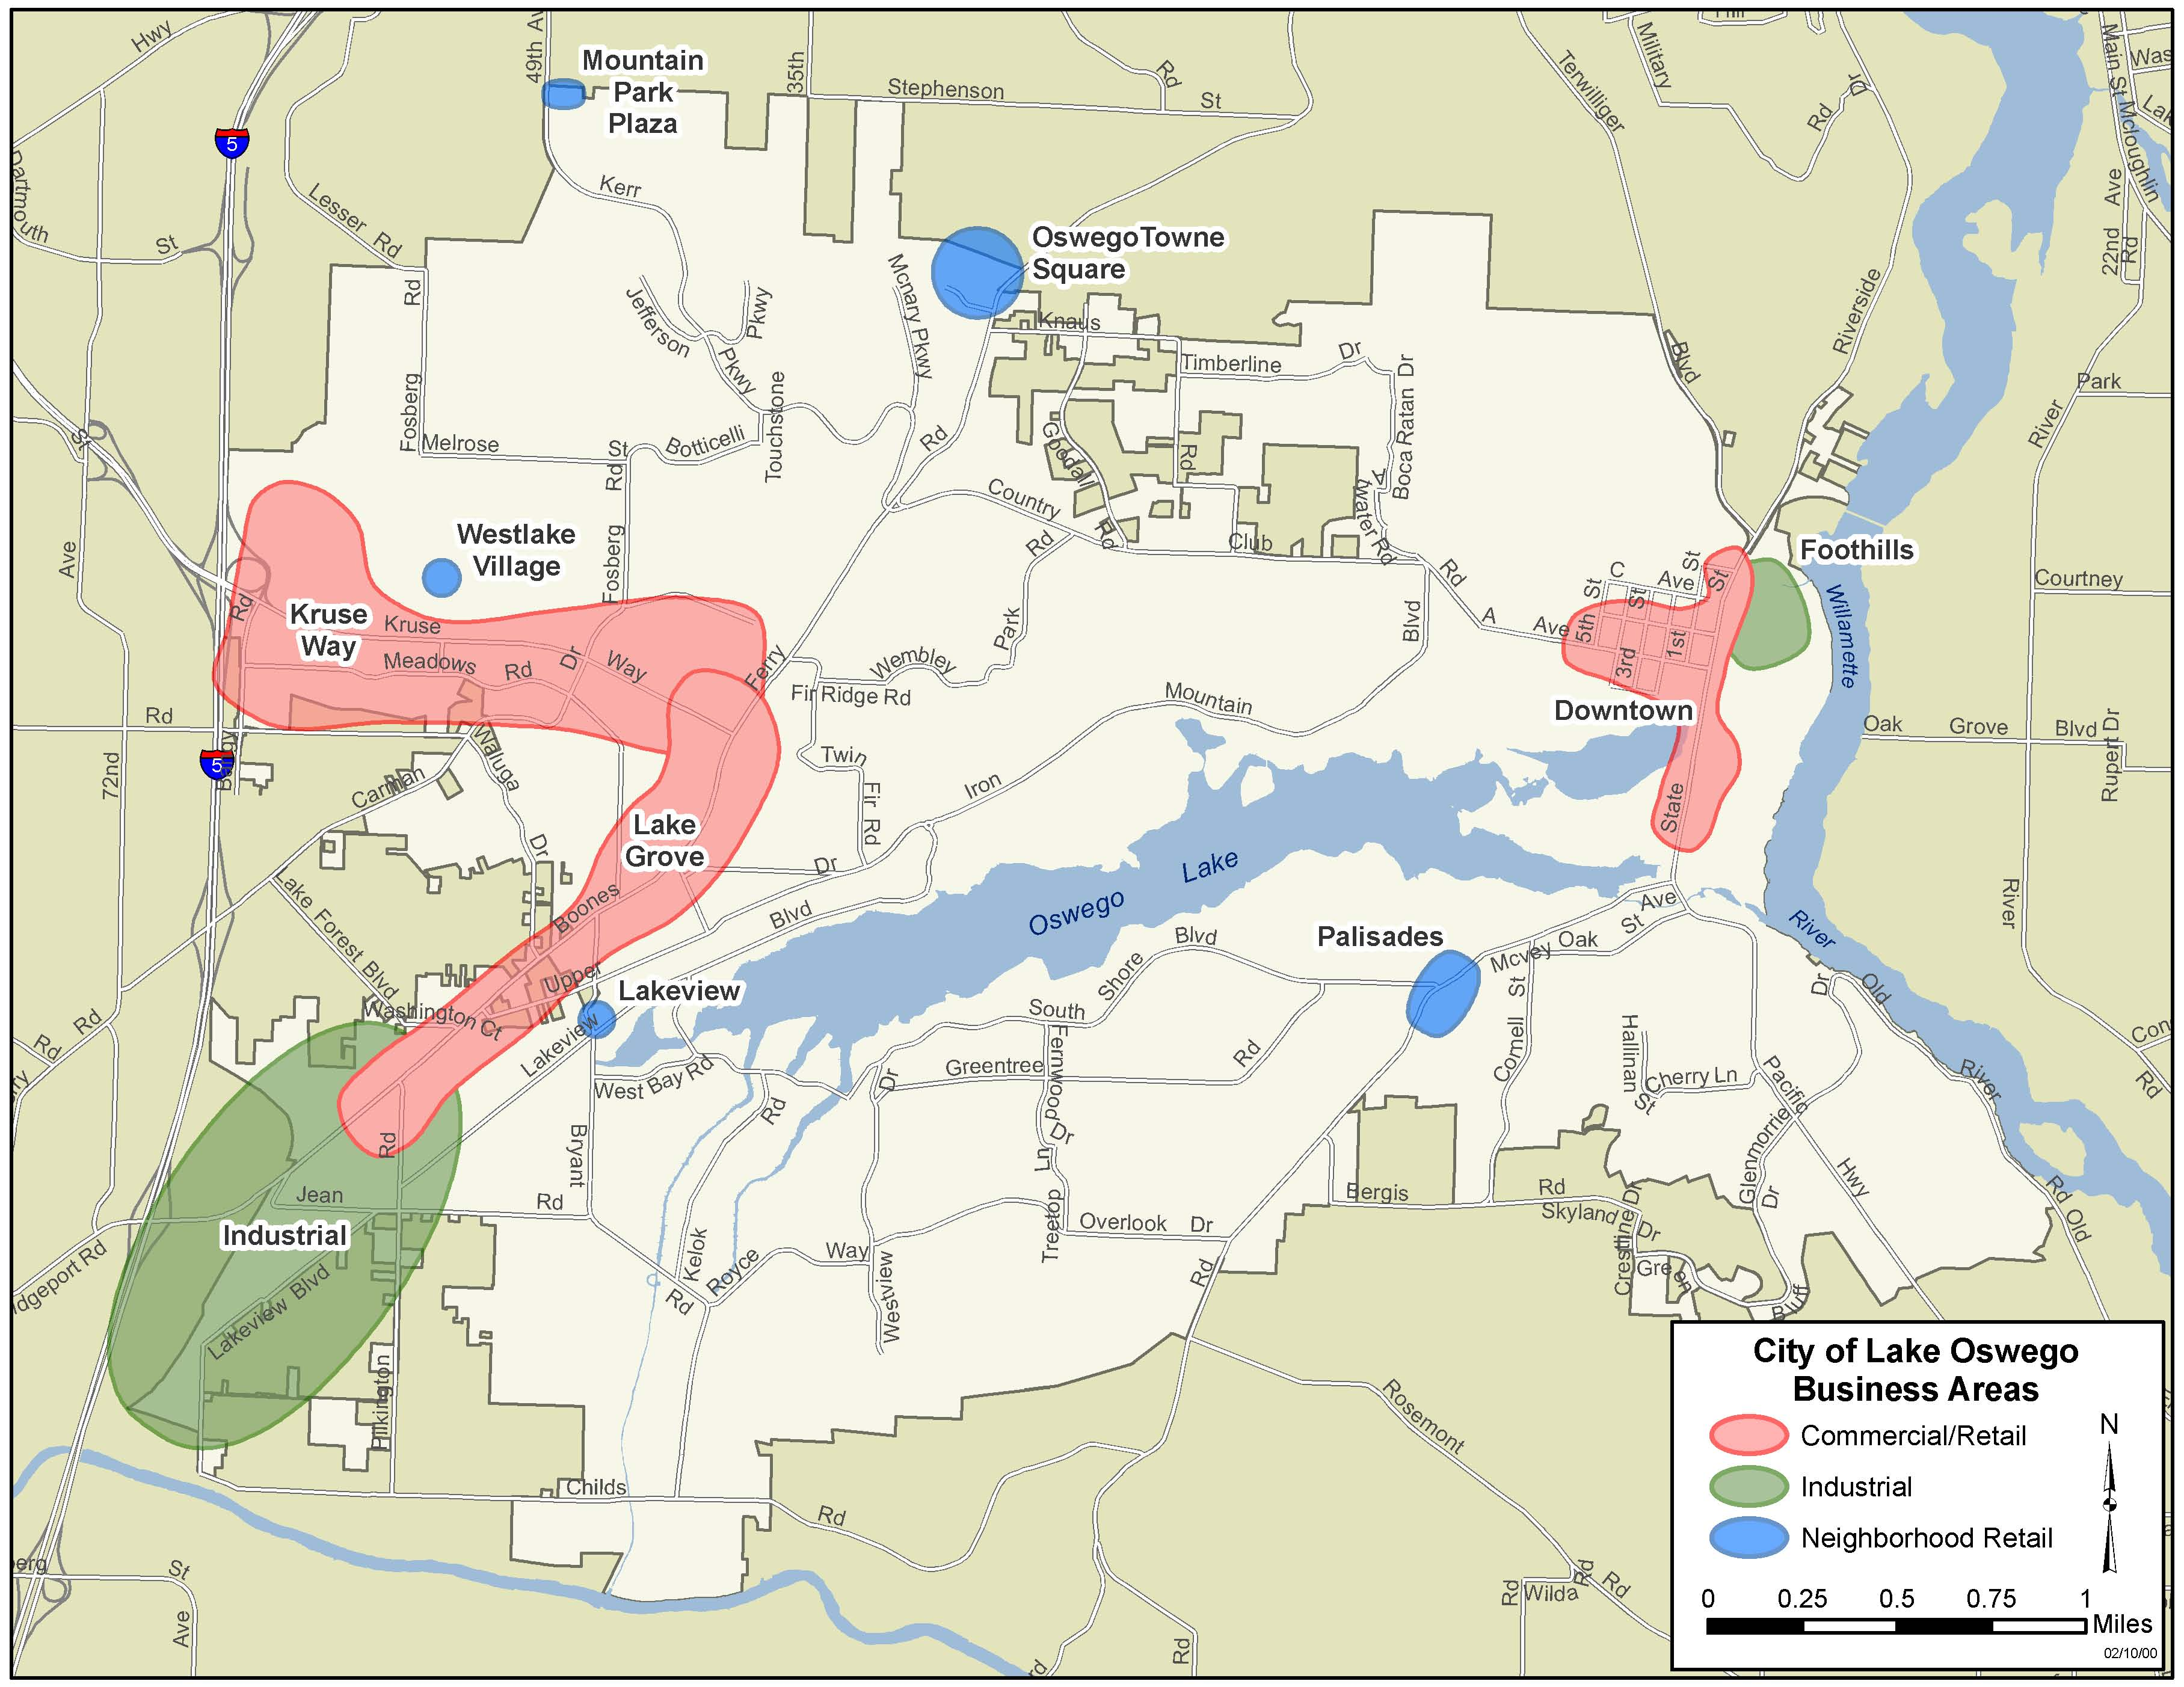 Map of Business Districts City of Lake Oswego